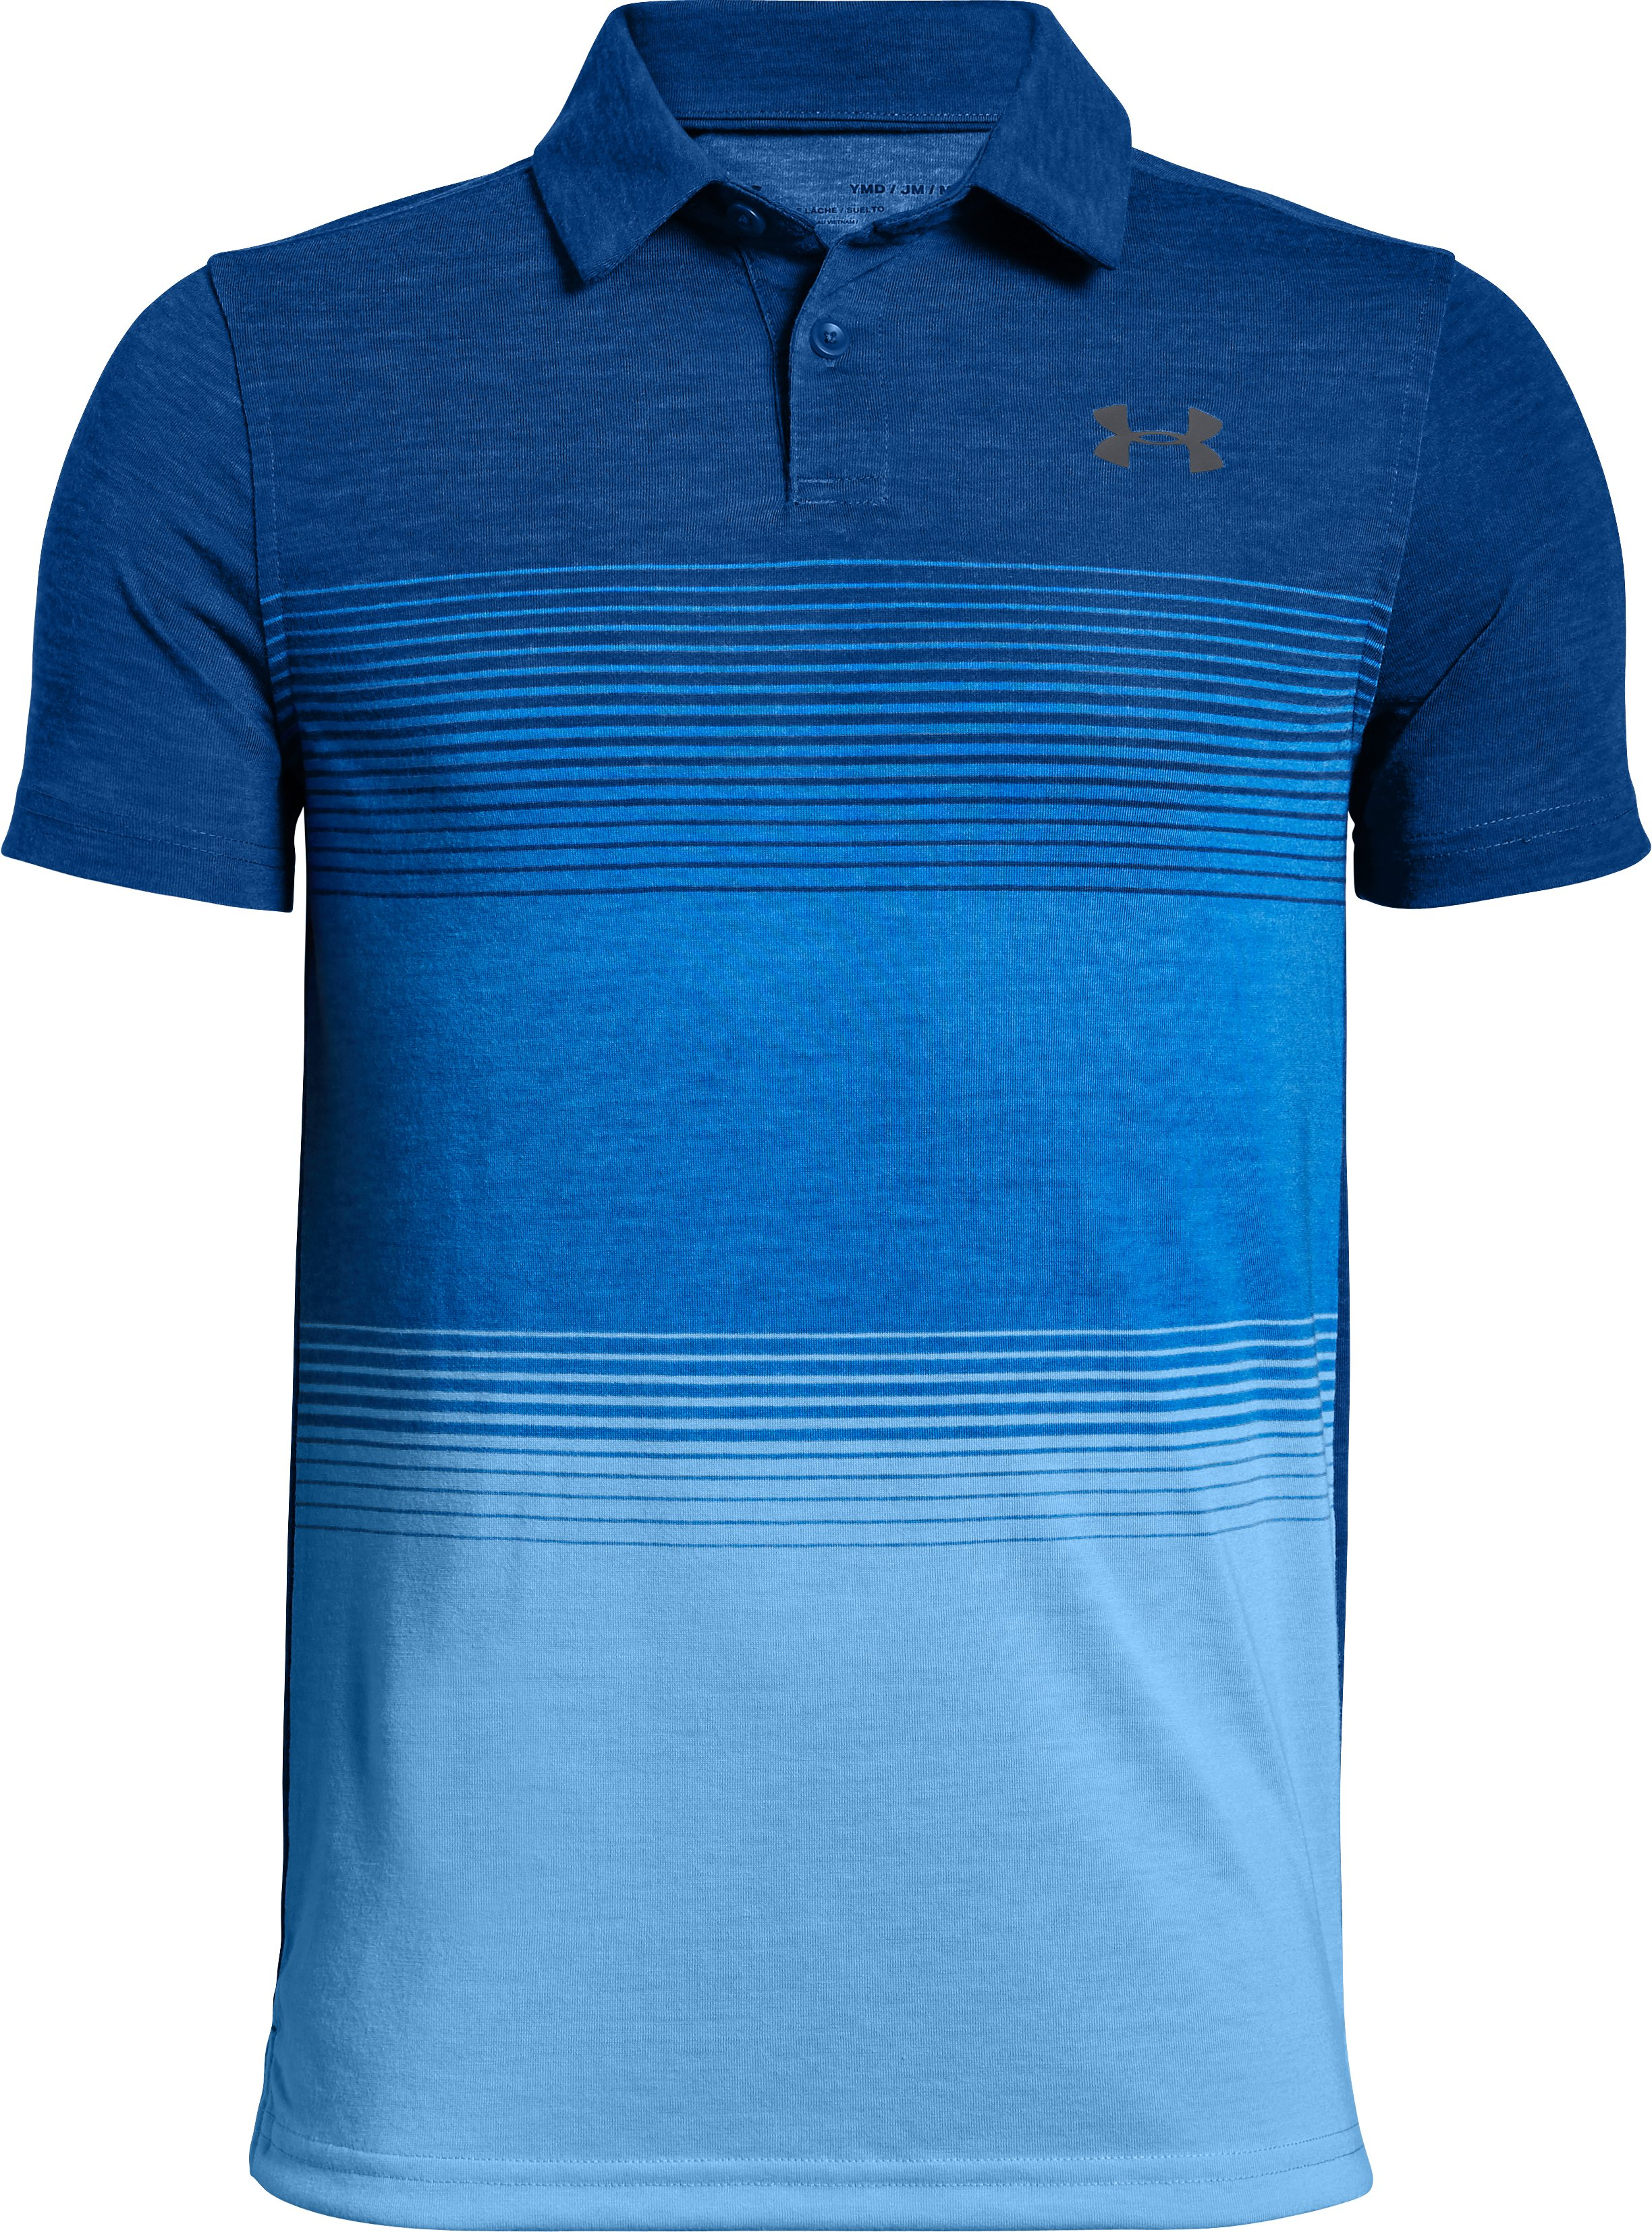 Boys' UA Jordan Spieth Threadborne Gradient Polo, Royal